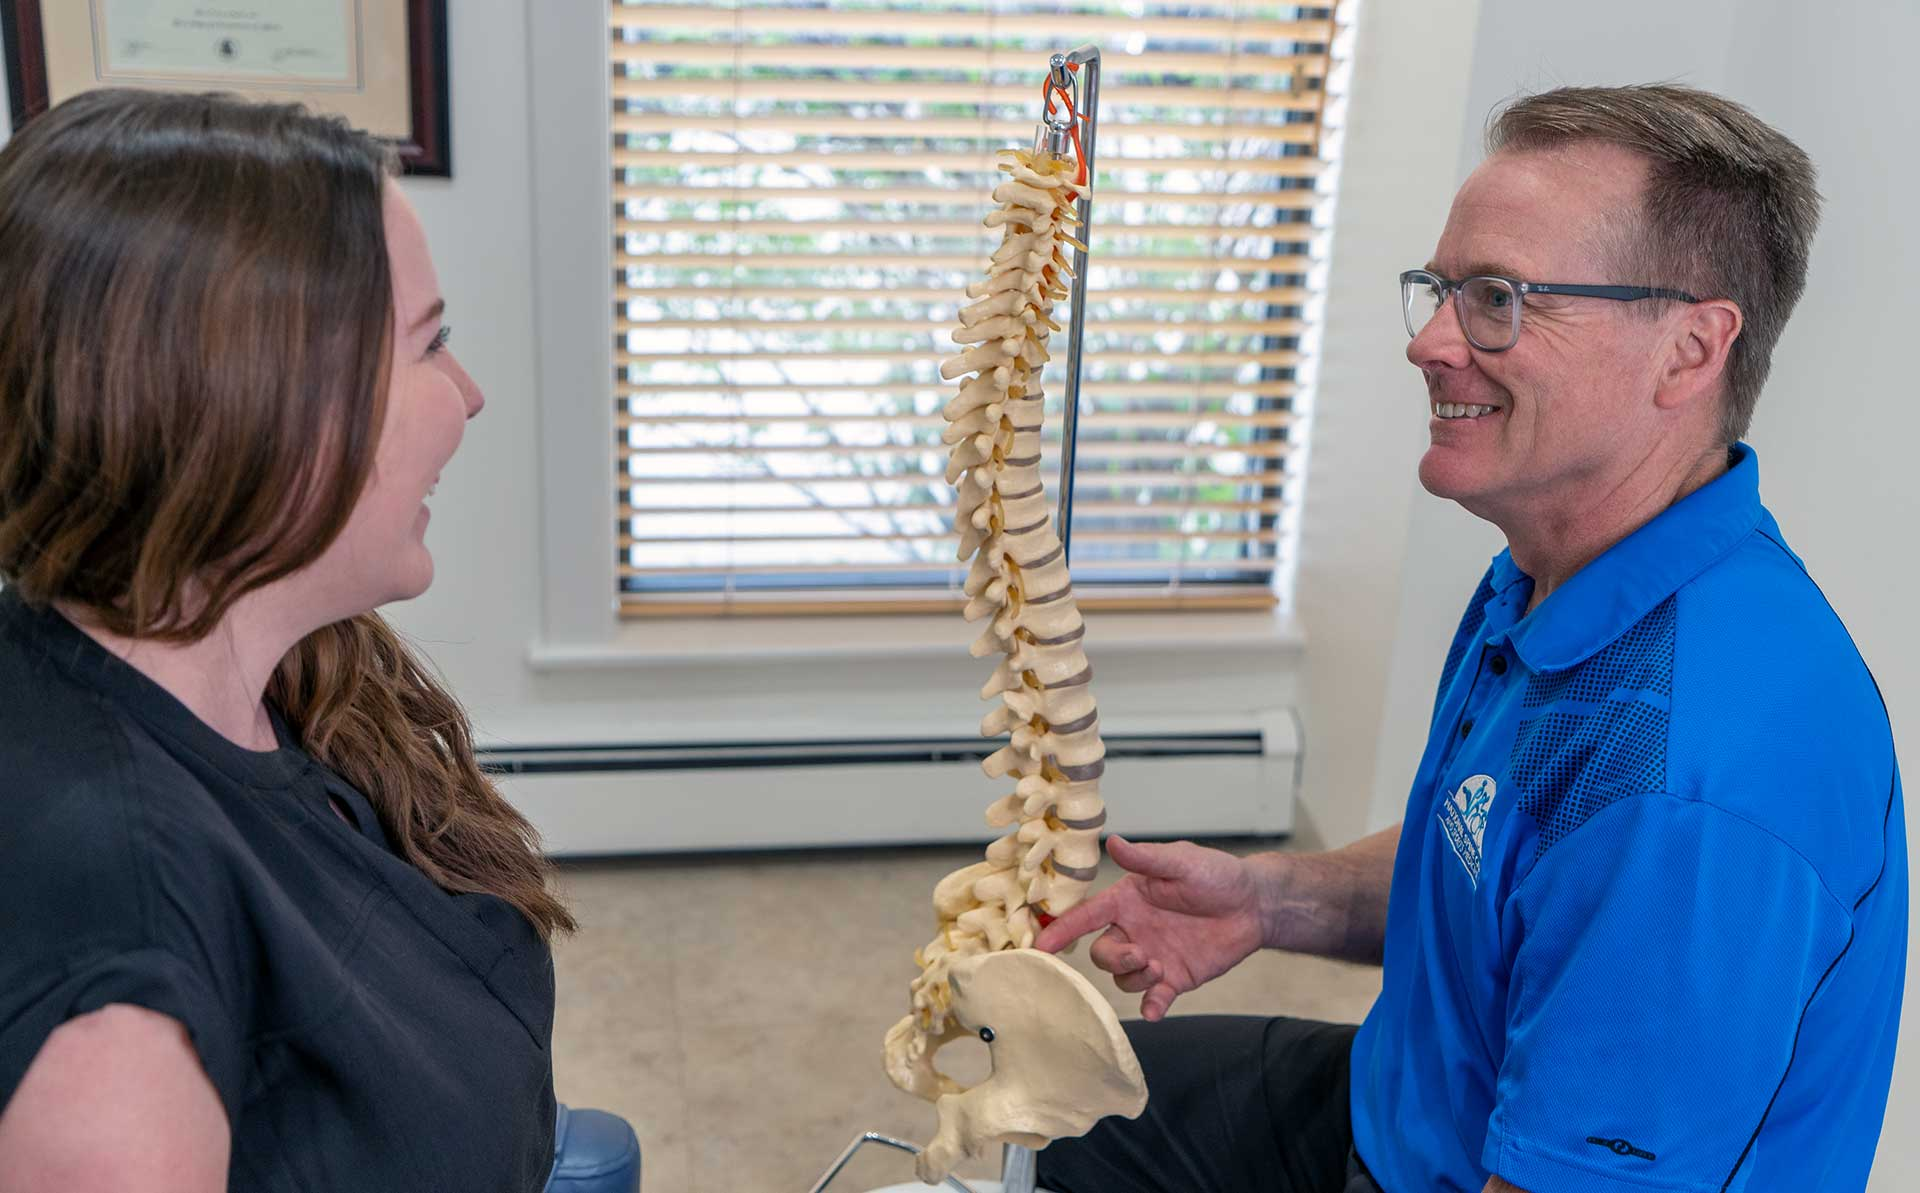 National Spine Care | Explaining to Patient